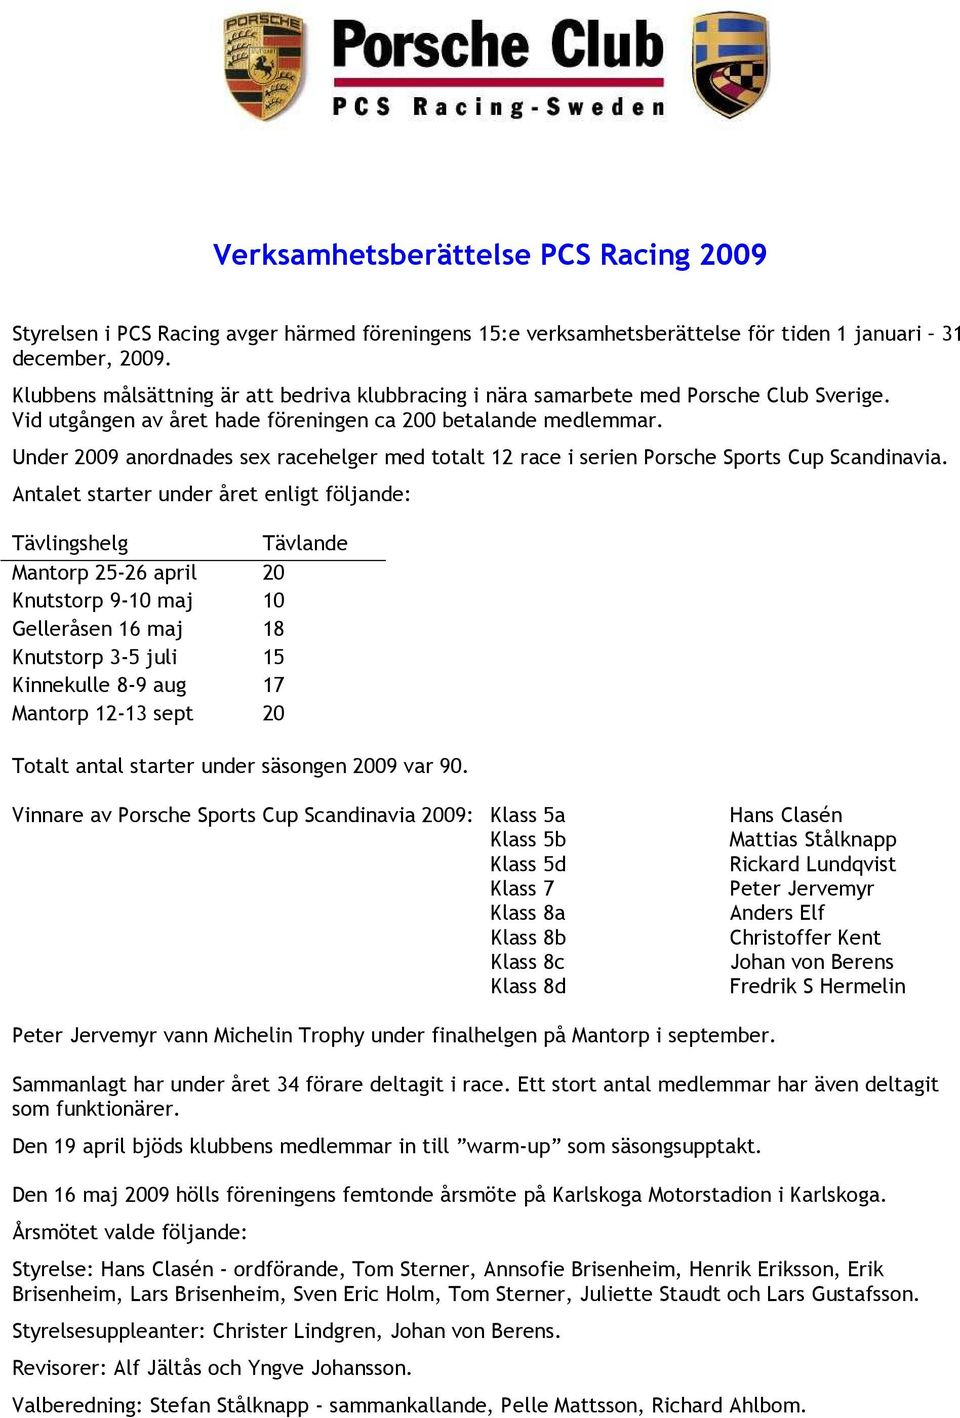 Under 2009 anordnades sex racehelger med totalt 12 race i serien Porsche Sports Cup Scandinavia.